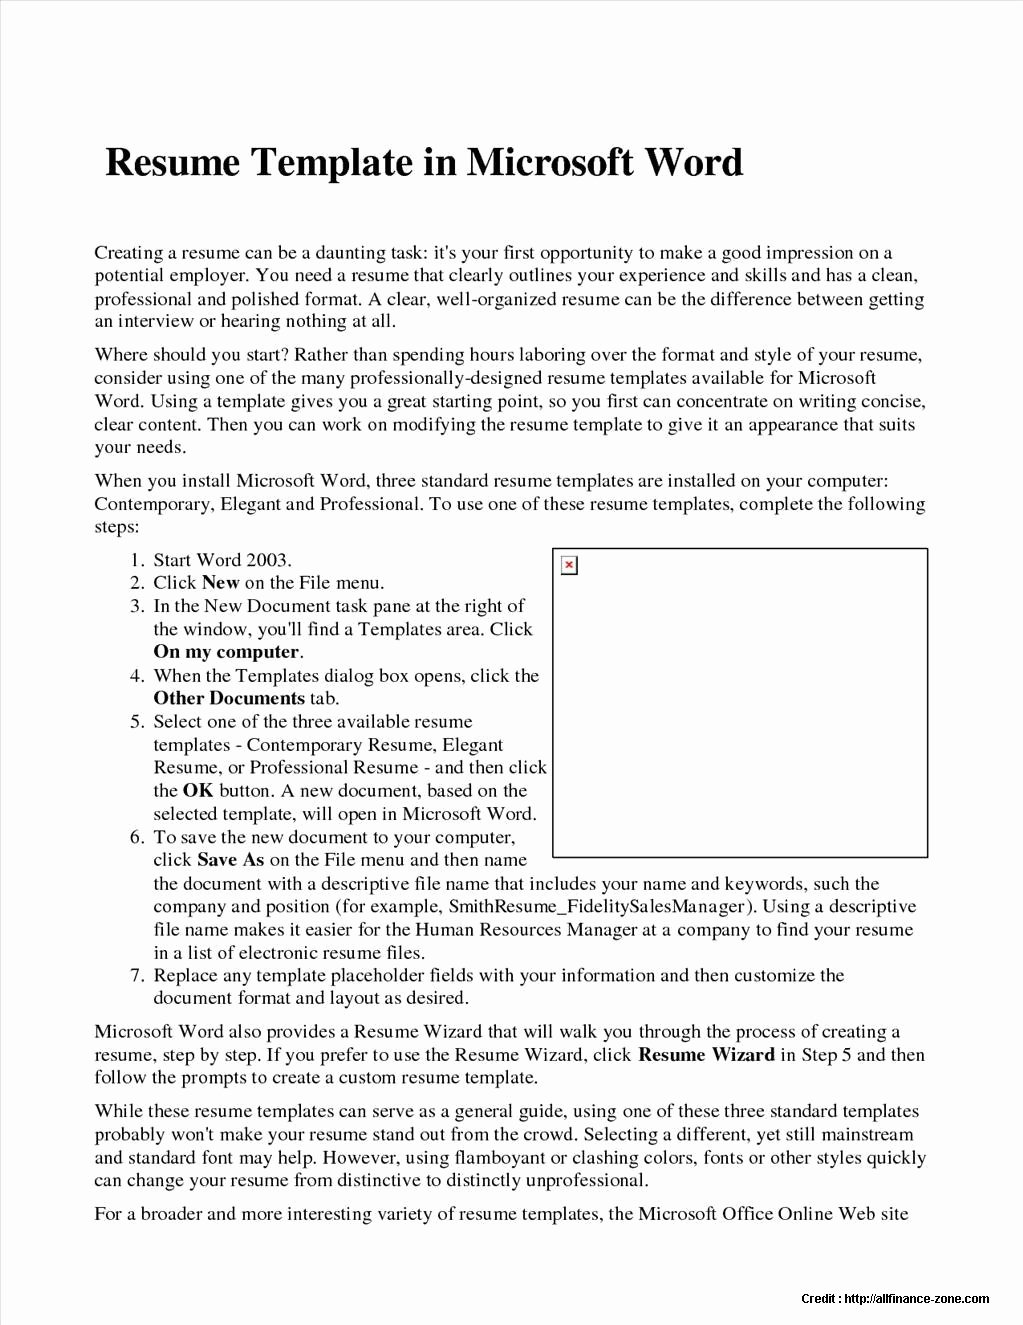 Resume Wizard In Word 2007 Free Download Resume Resume